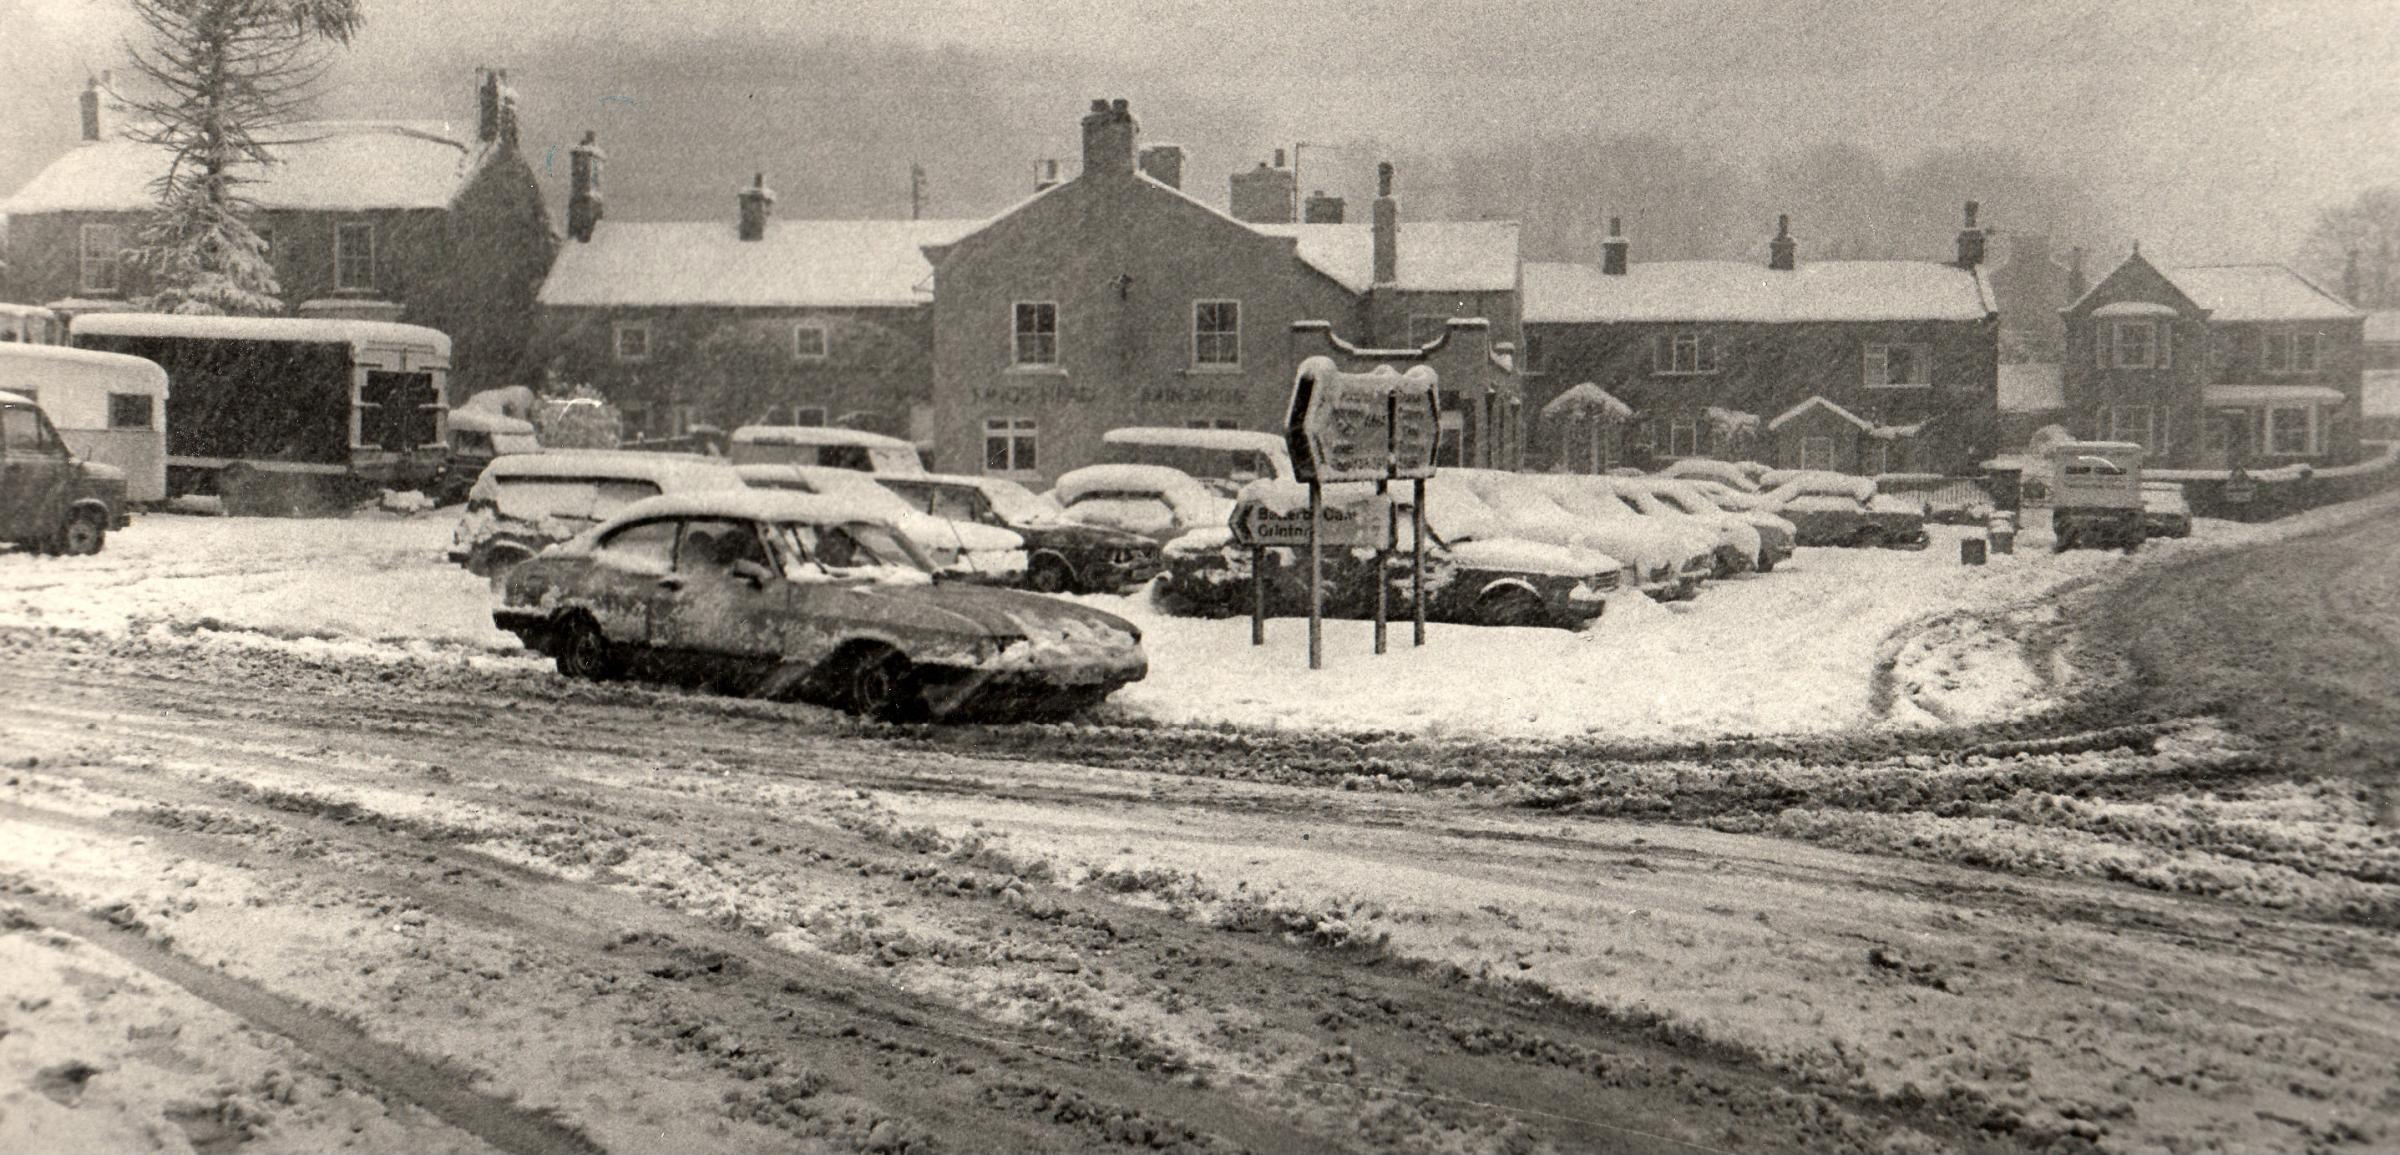 What sort of vehicle is that in the snow in Leyburn in 1981? Readers are unanimous in their response